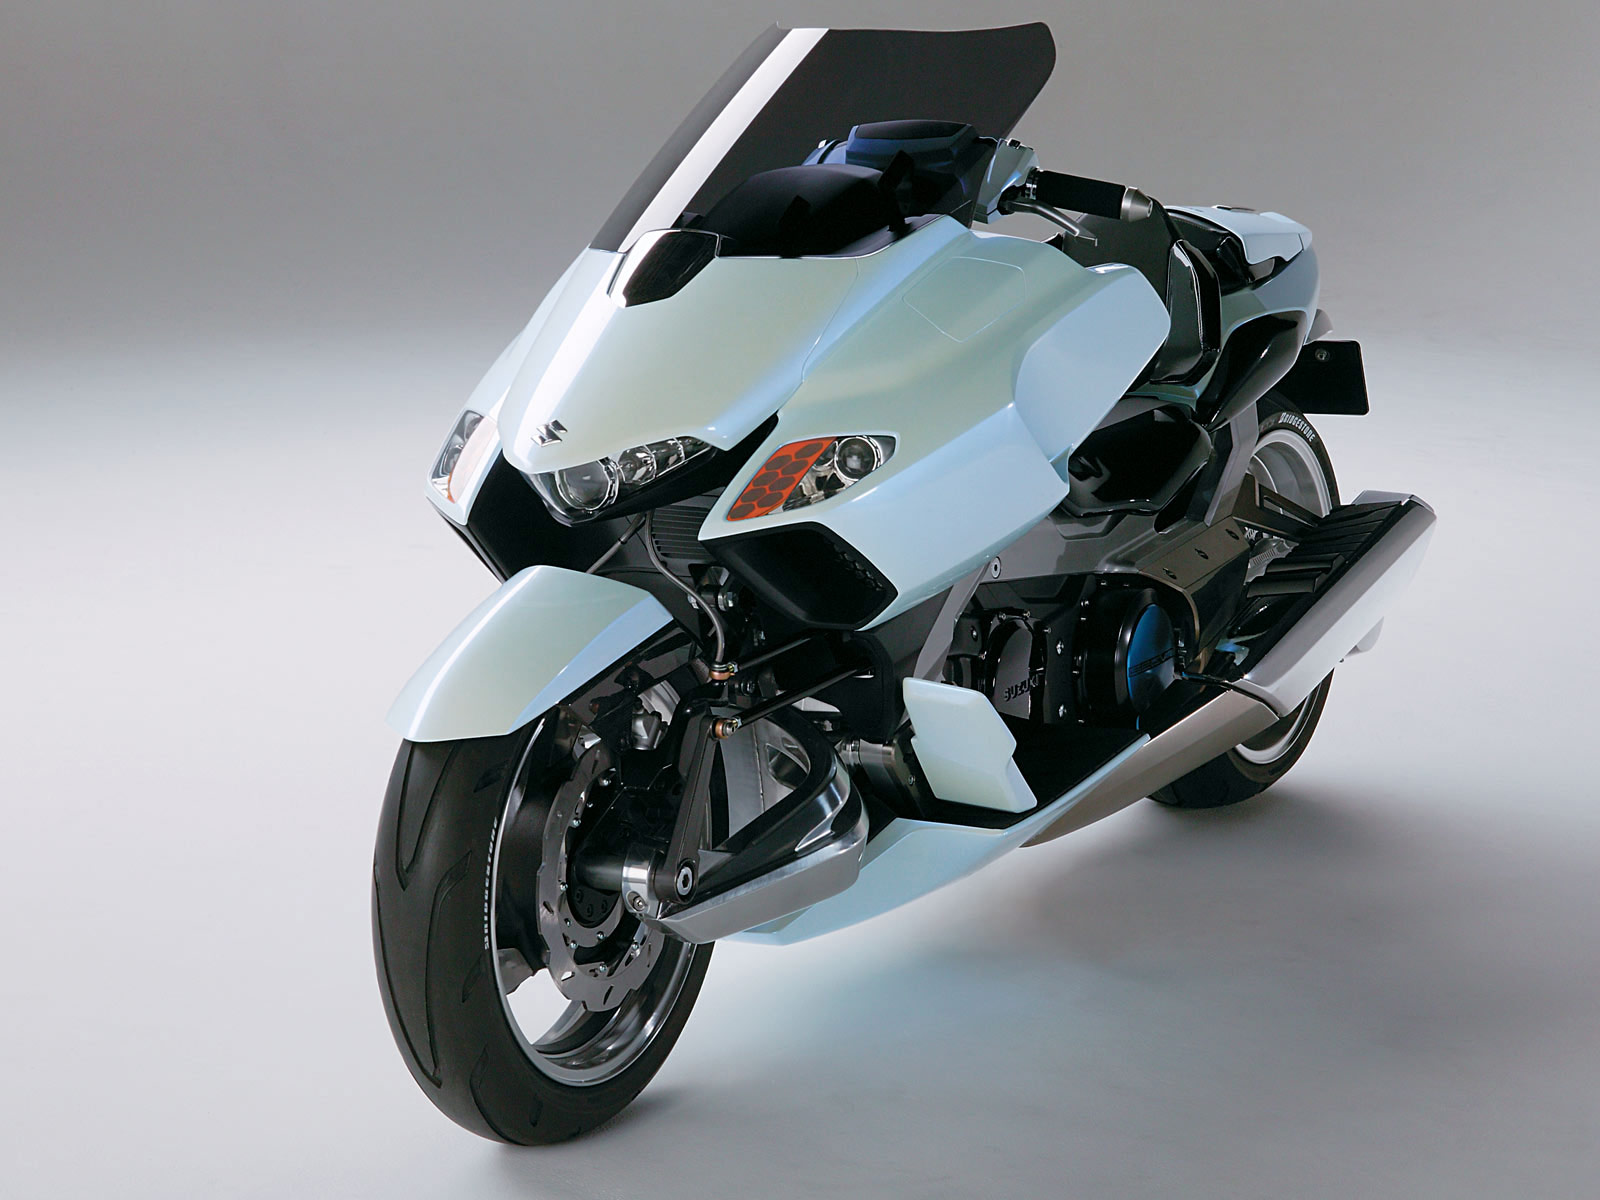 2004 SUZUKI GStrider Concept motorcycle desktop wallpaper